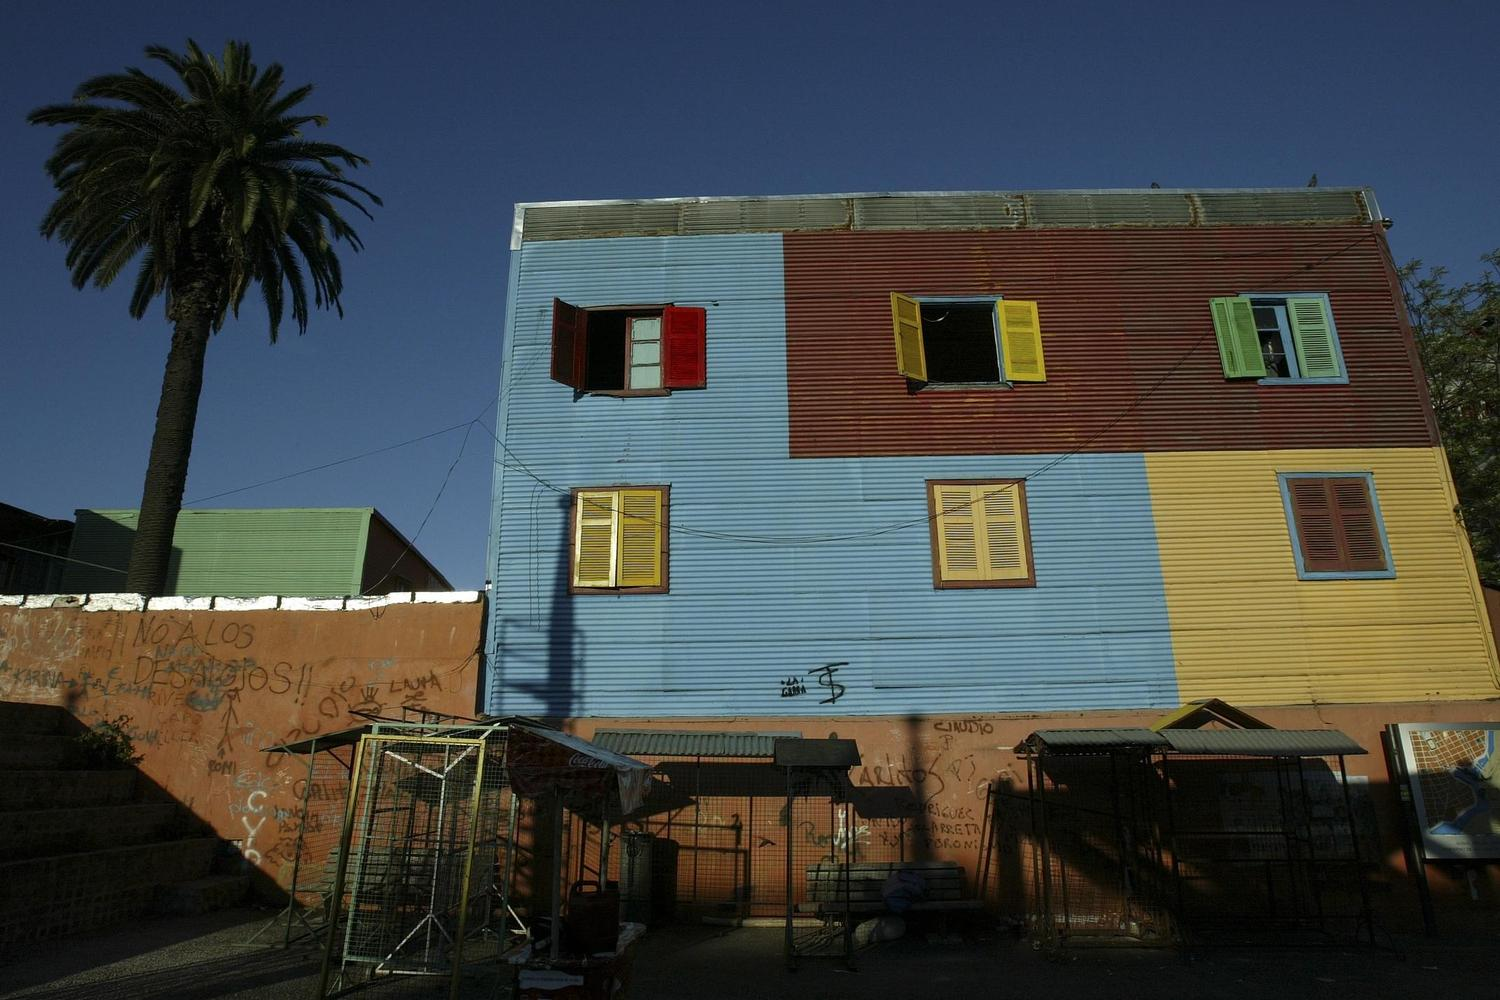 The colourful neighbourhood of La Boca in Buenos Aires